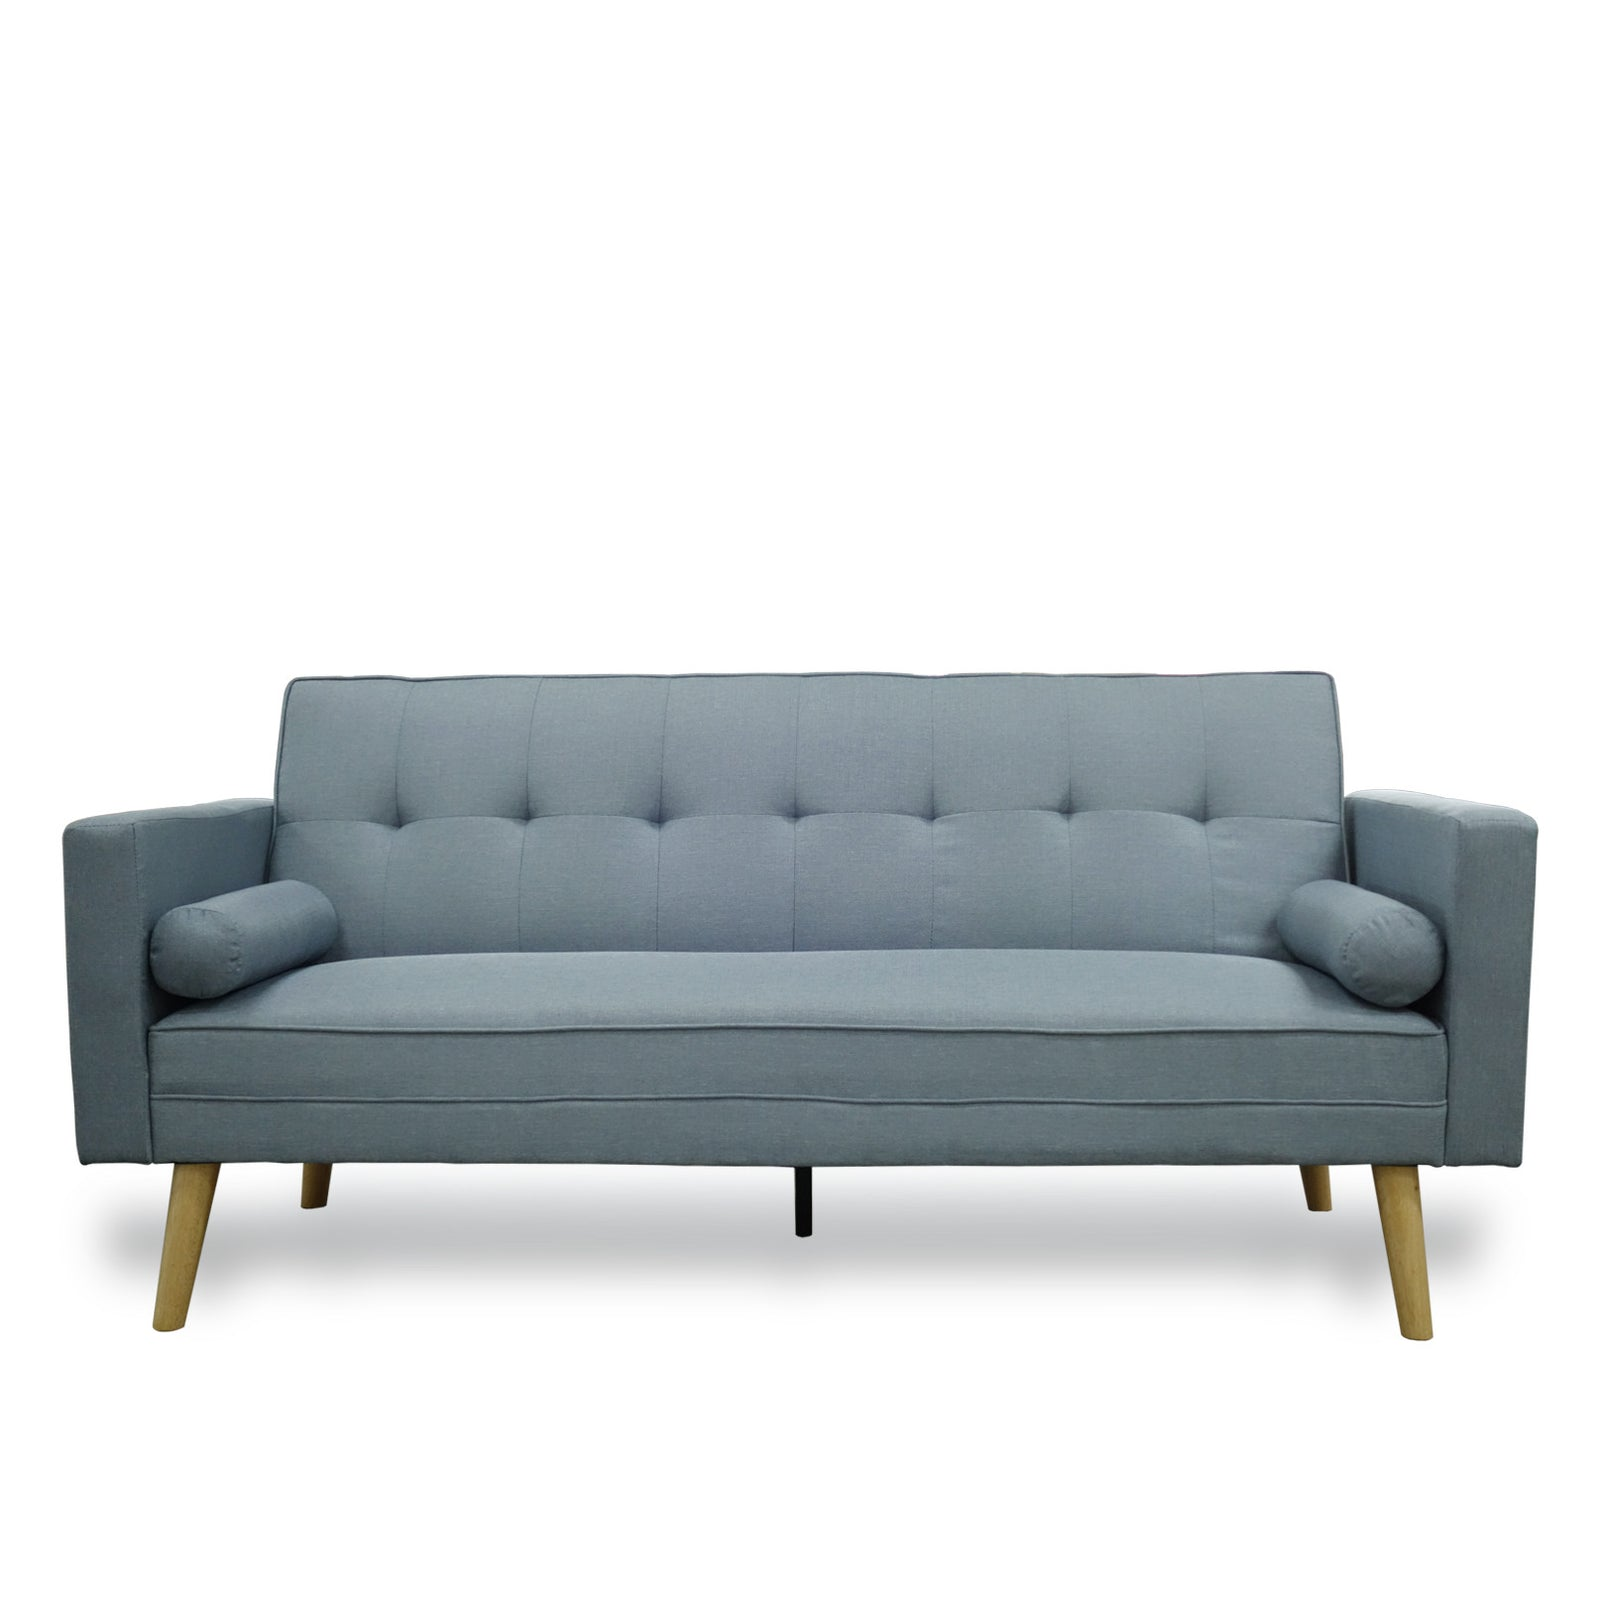 Phenomenal Alison Light Blue Sofa Bed Caraccident5 Cool Chair Designs And Ideas Caraccident5Info